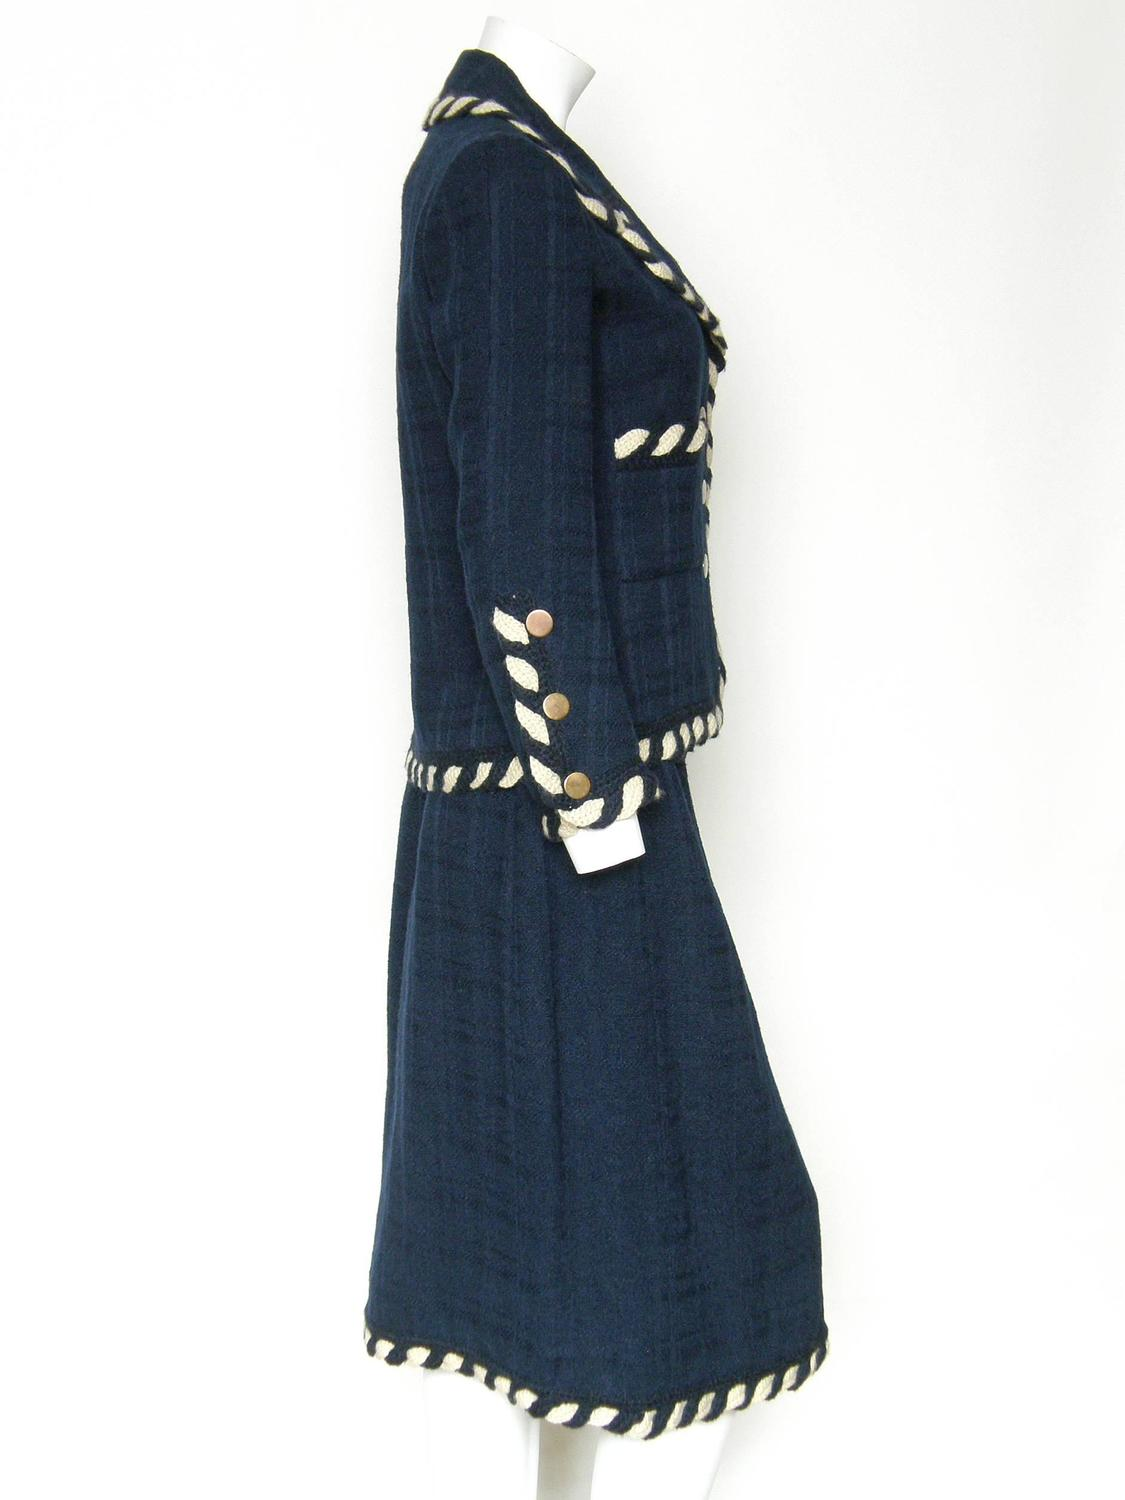 1960s chanel haute couture suit for sale at 1stdibs for Haute couture suits